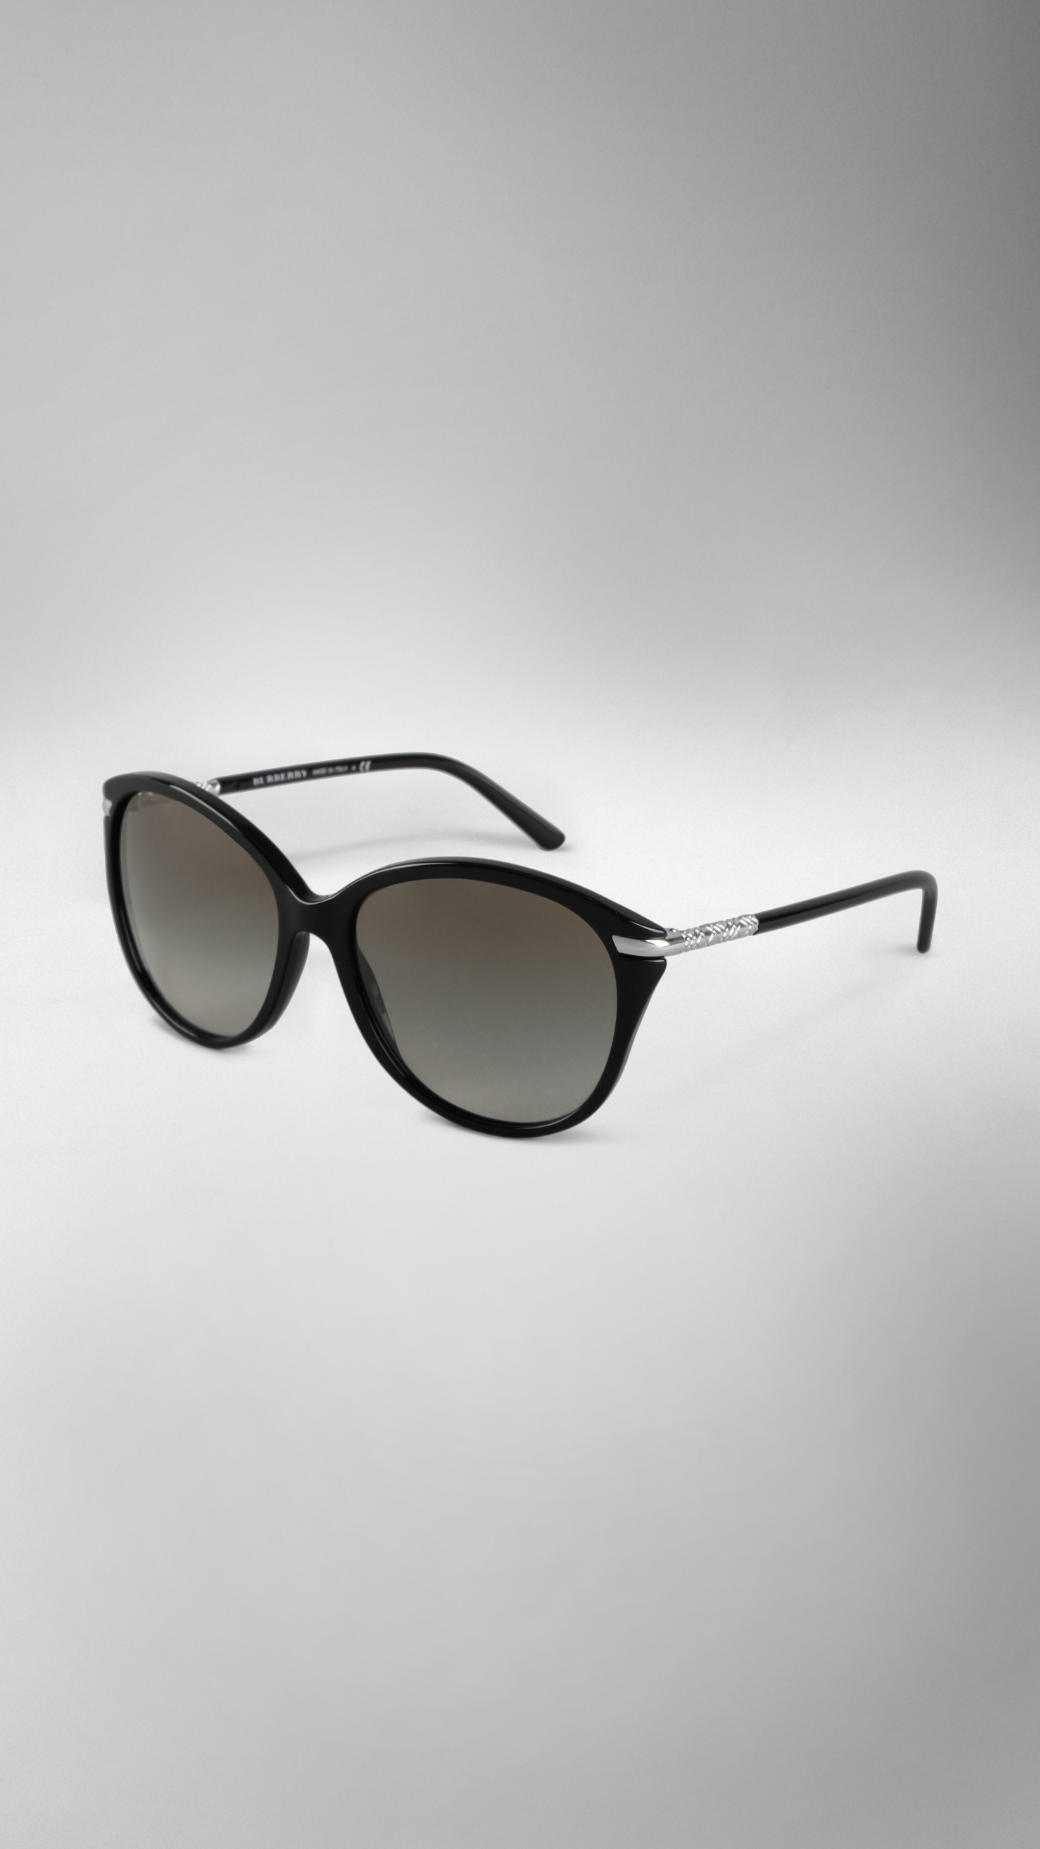 burberry sunglasses on sale c9k7  burberry sunglasses cat eye